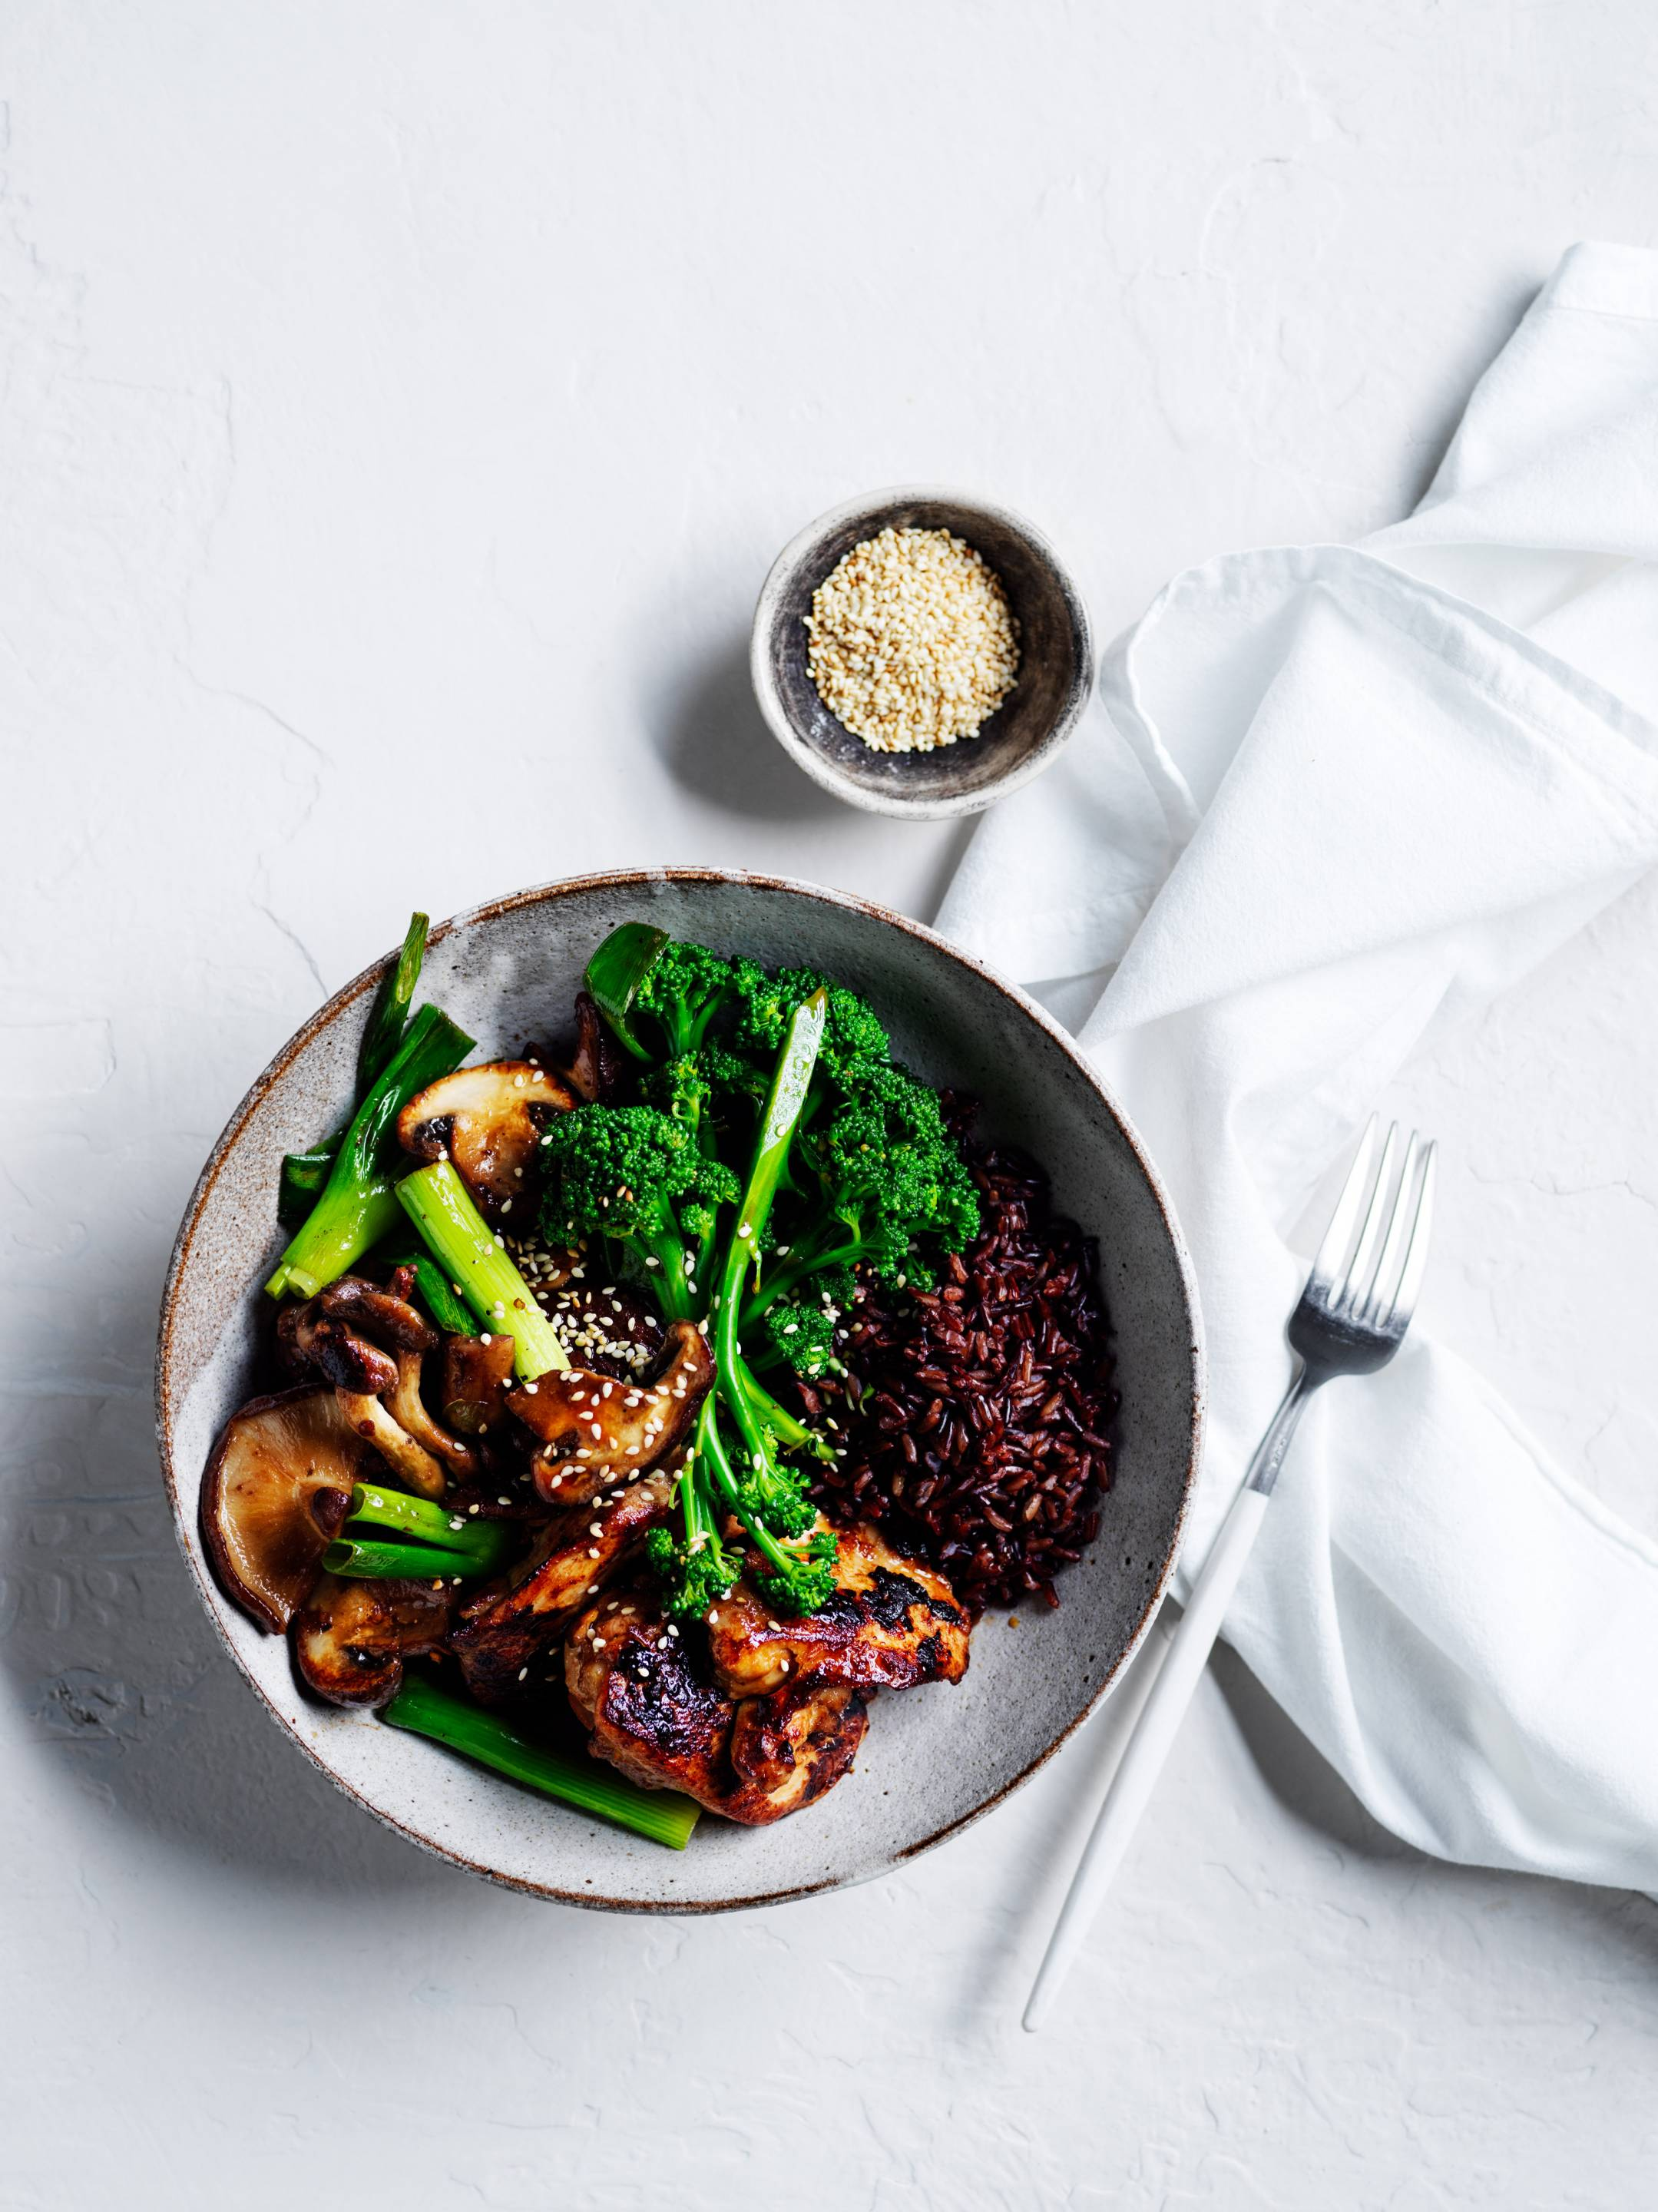 MISO CHICKEN BLACK RICE BOWL